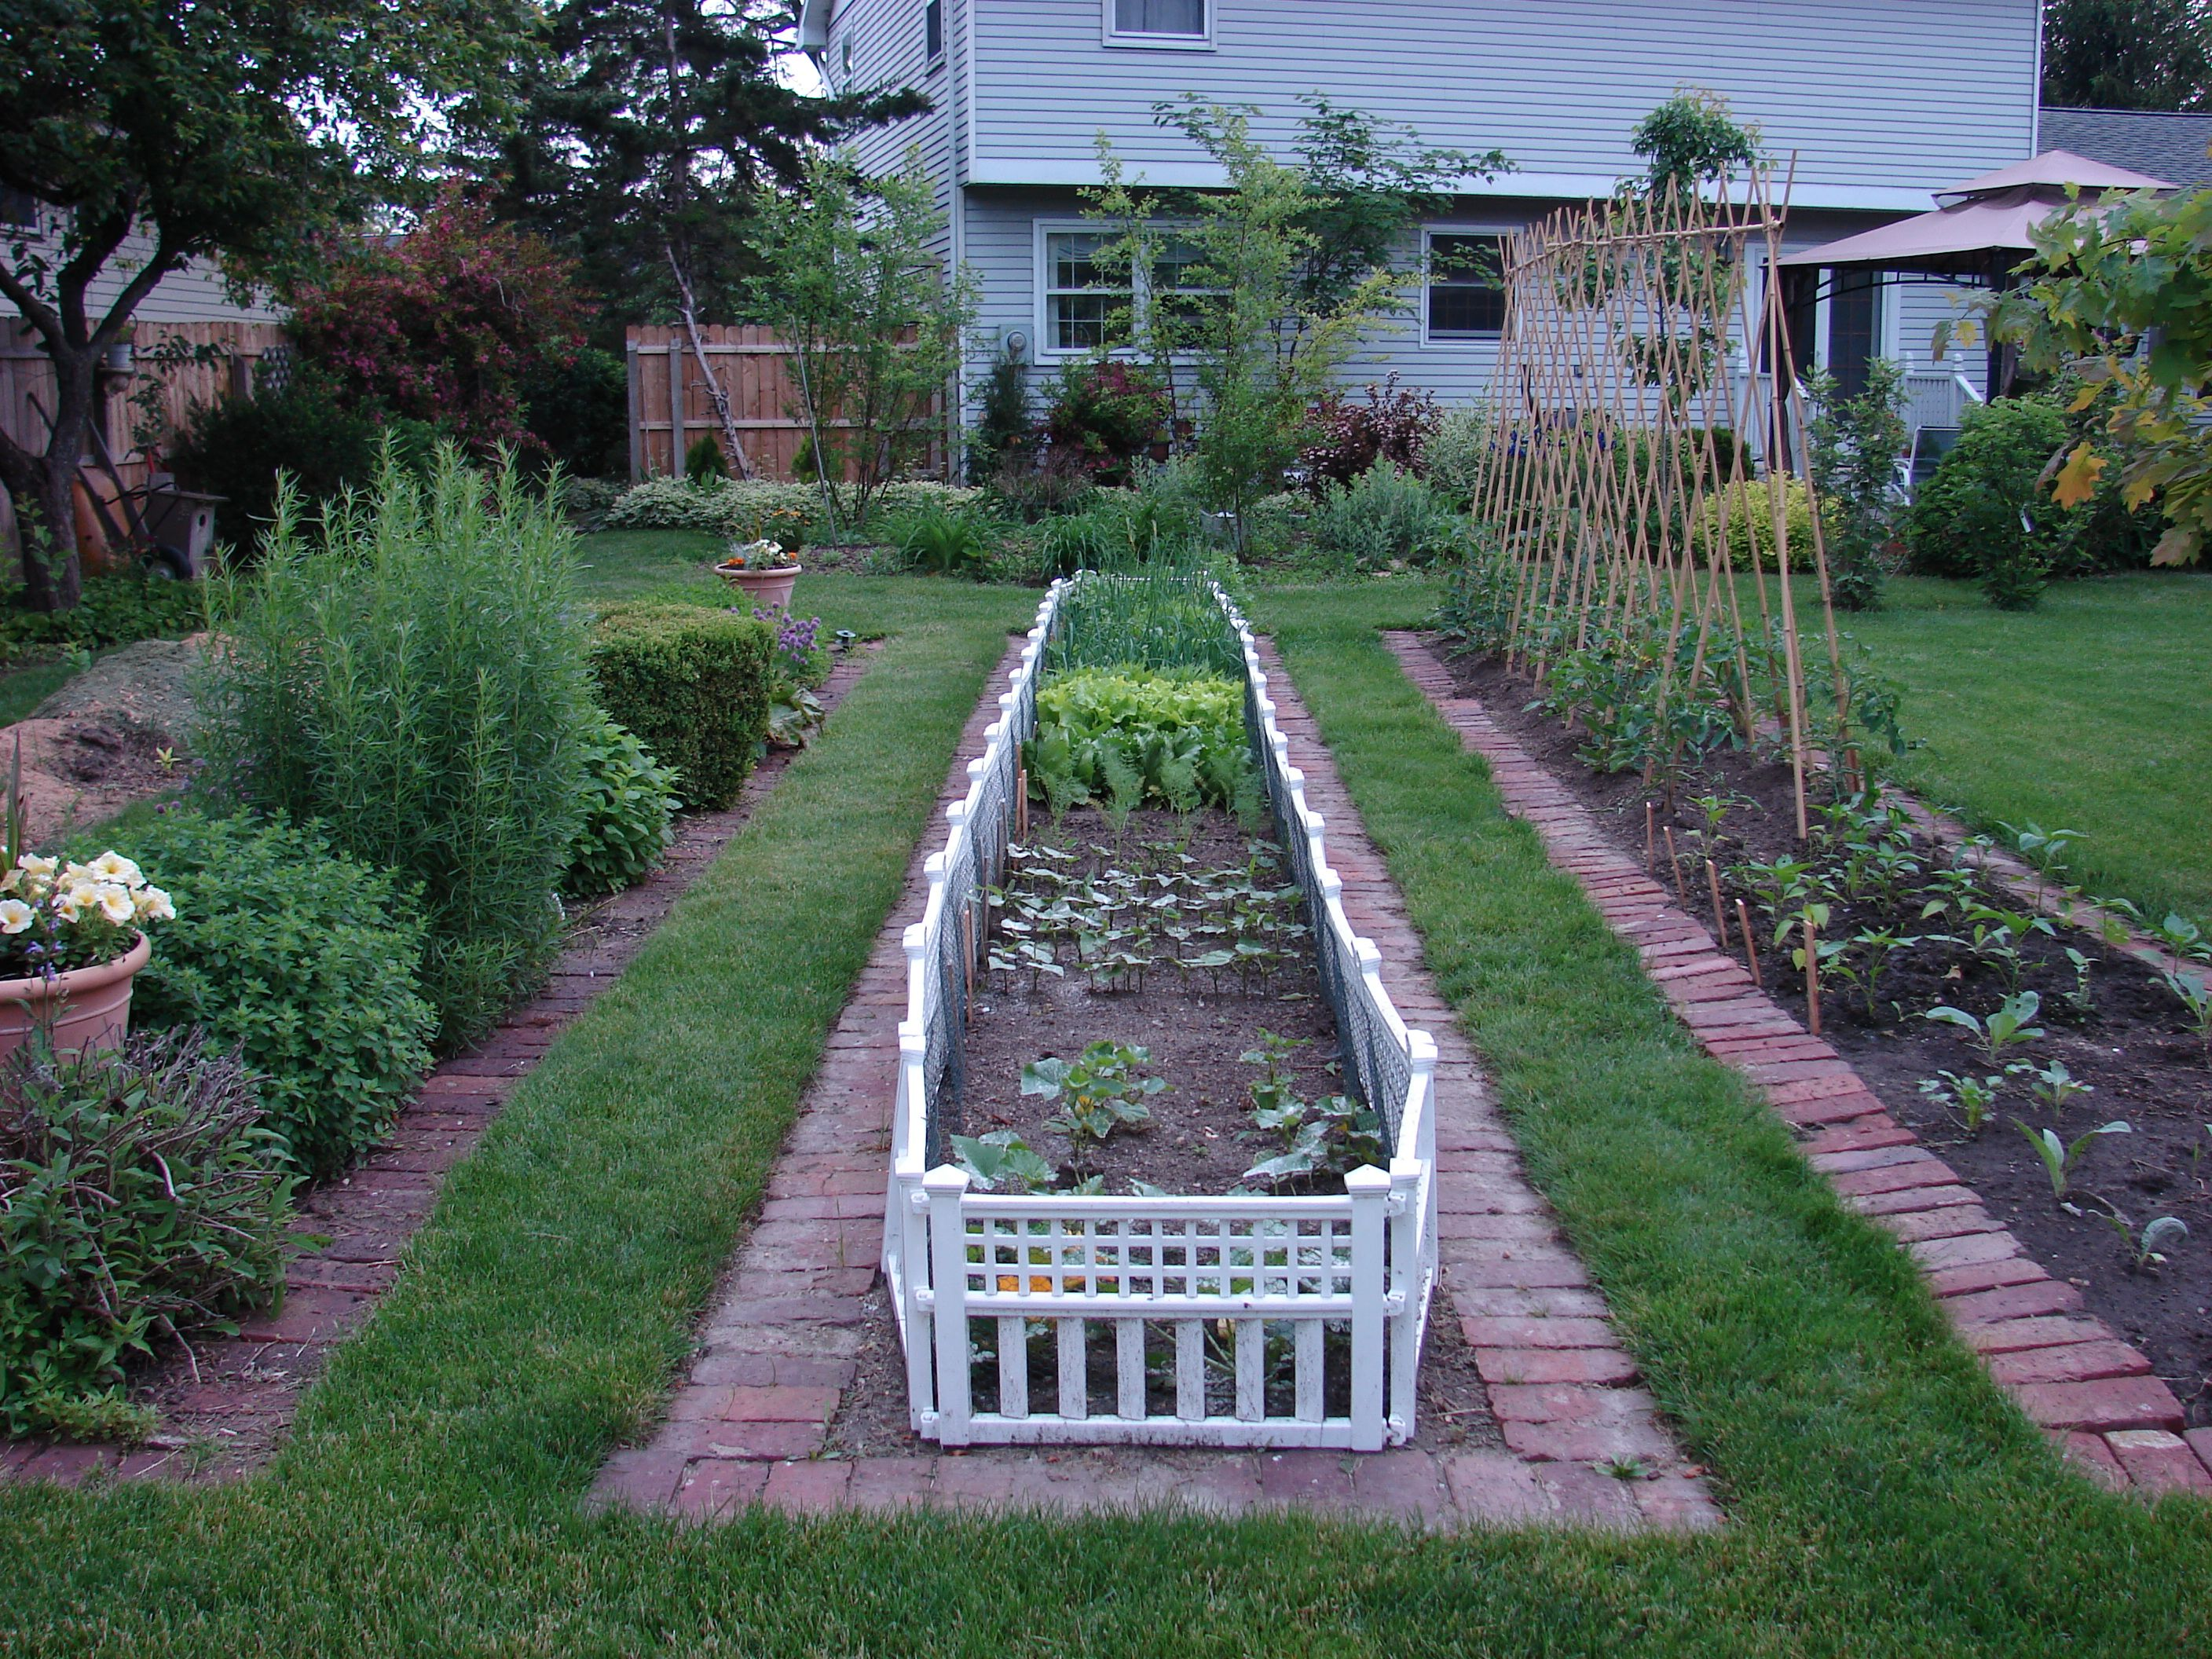 Vegetable and herb garden beds with old pavers and fencing